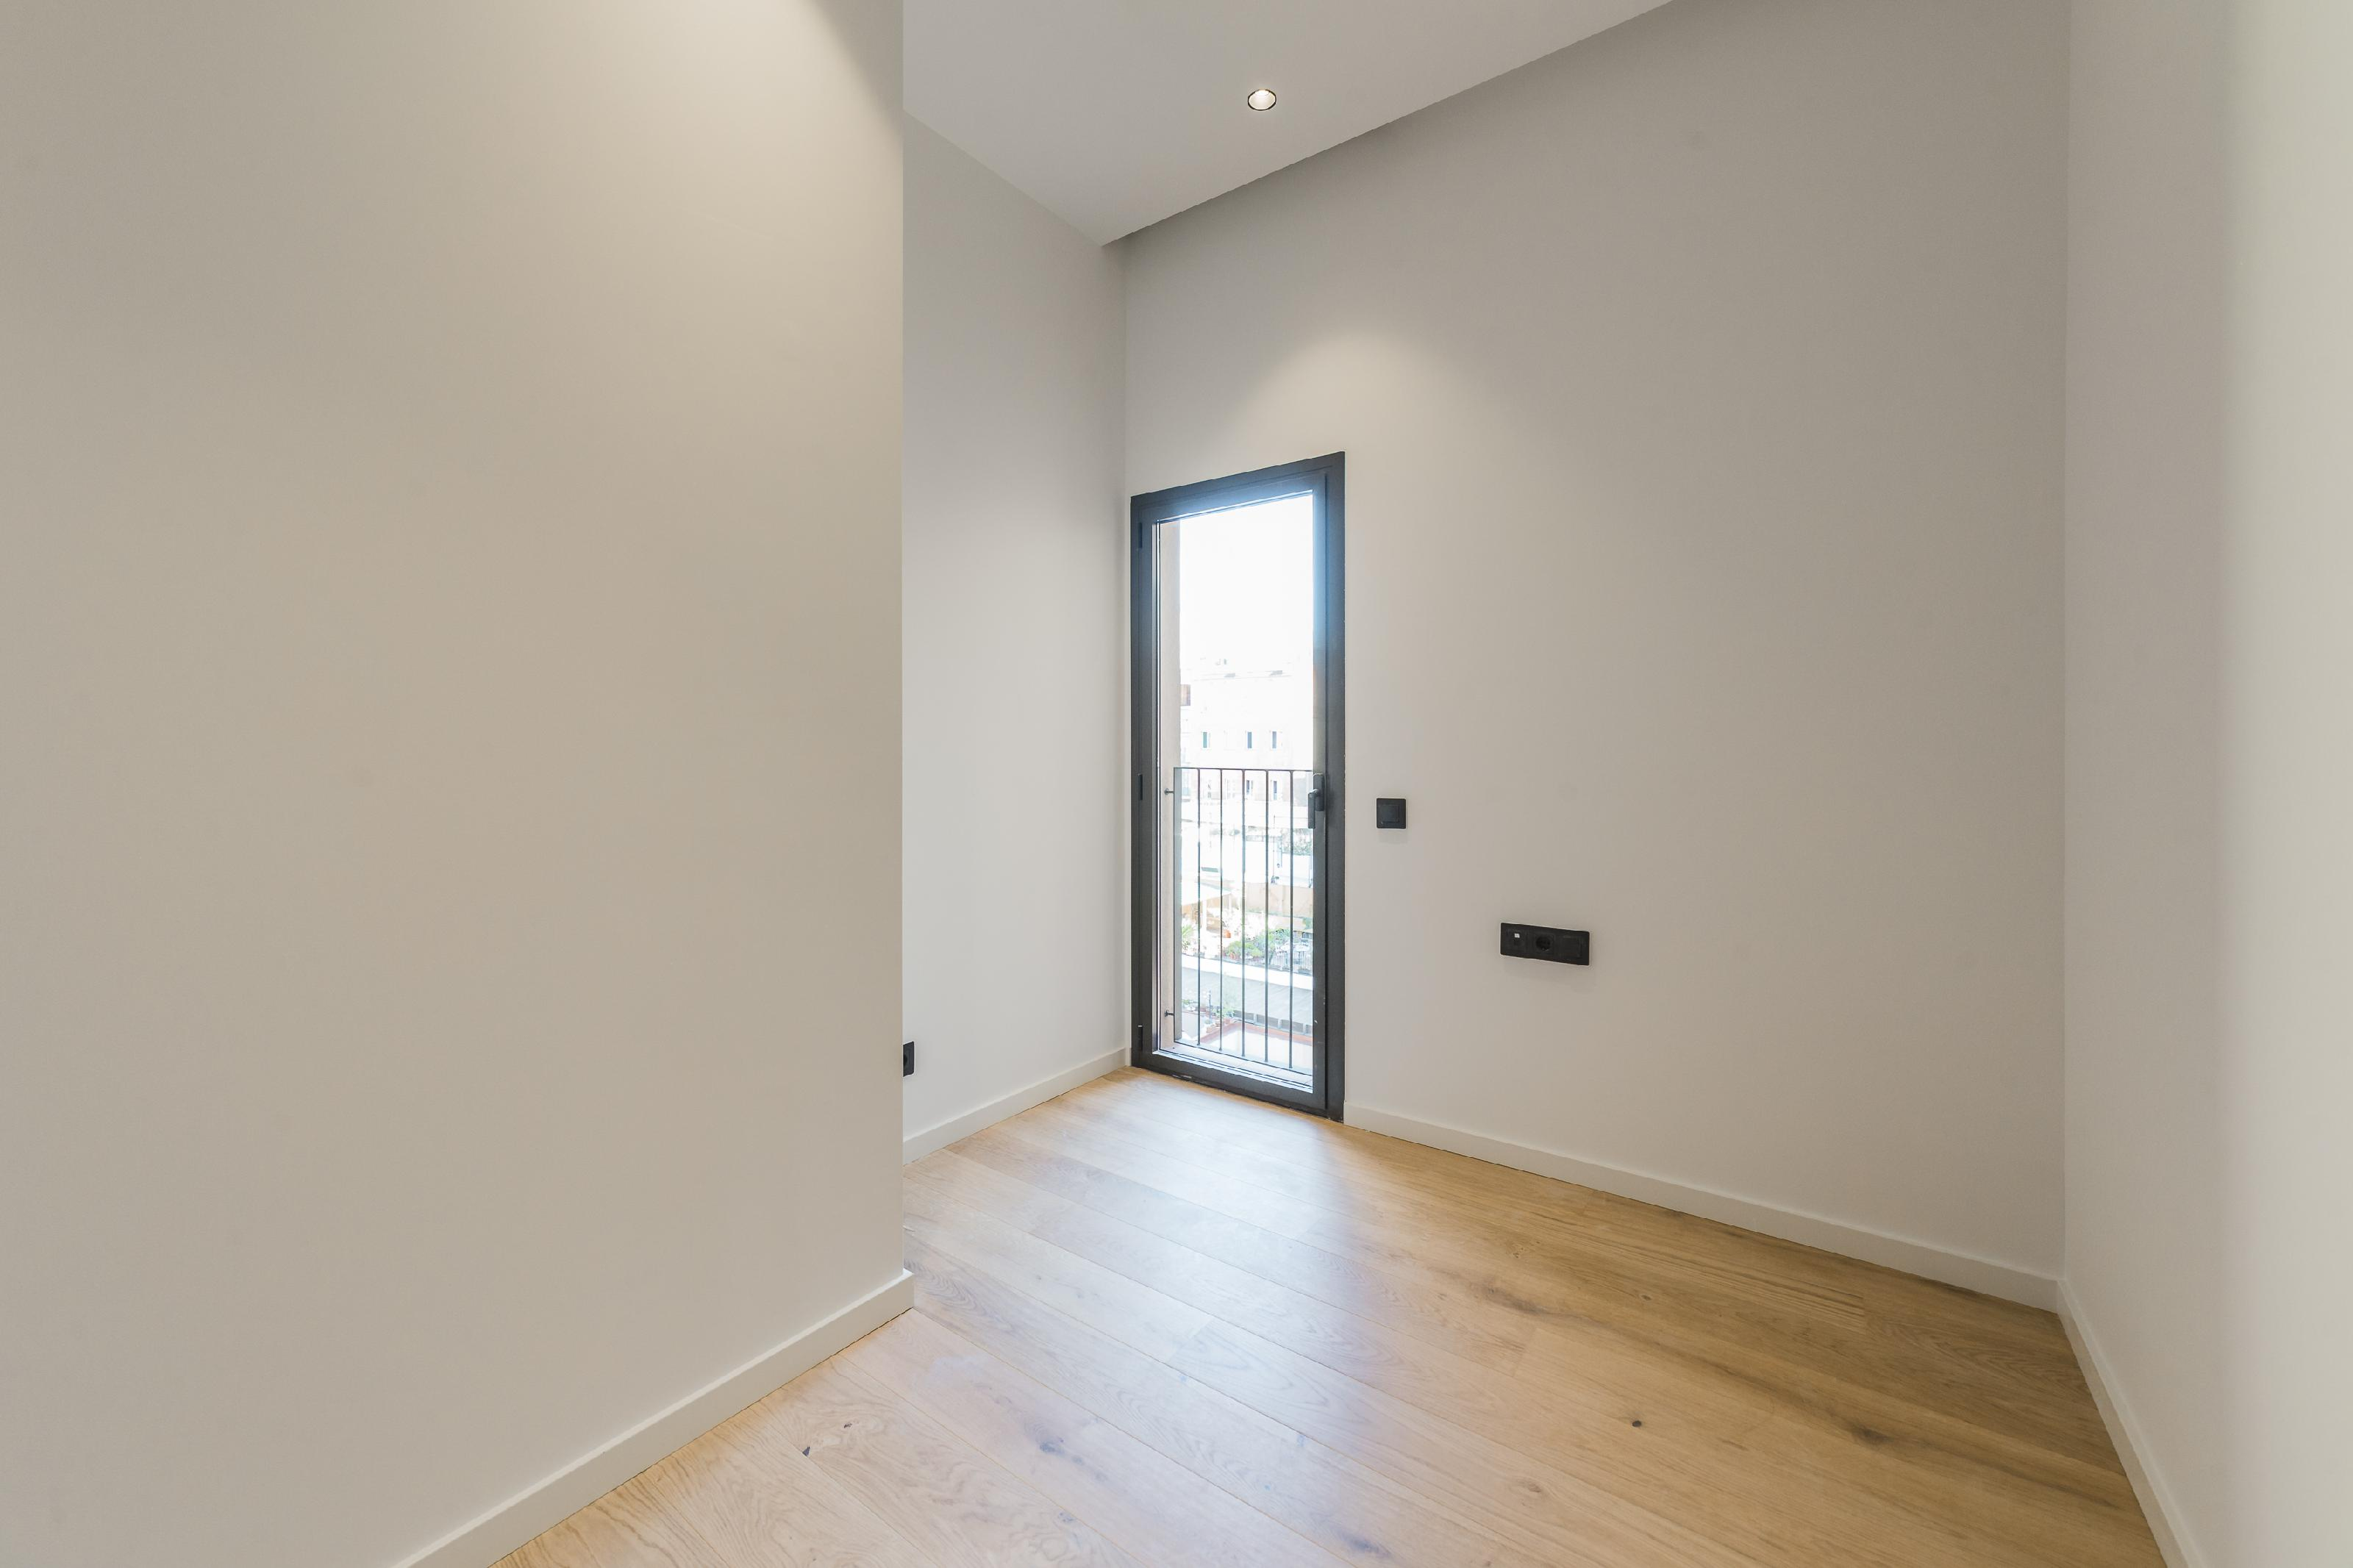 182474 Apartment for sale in Eixample, Old Left Eixample 29